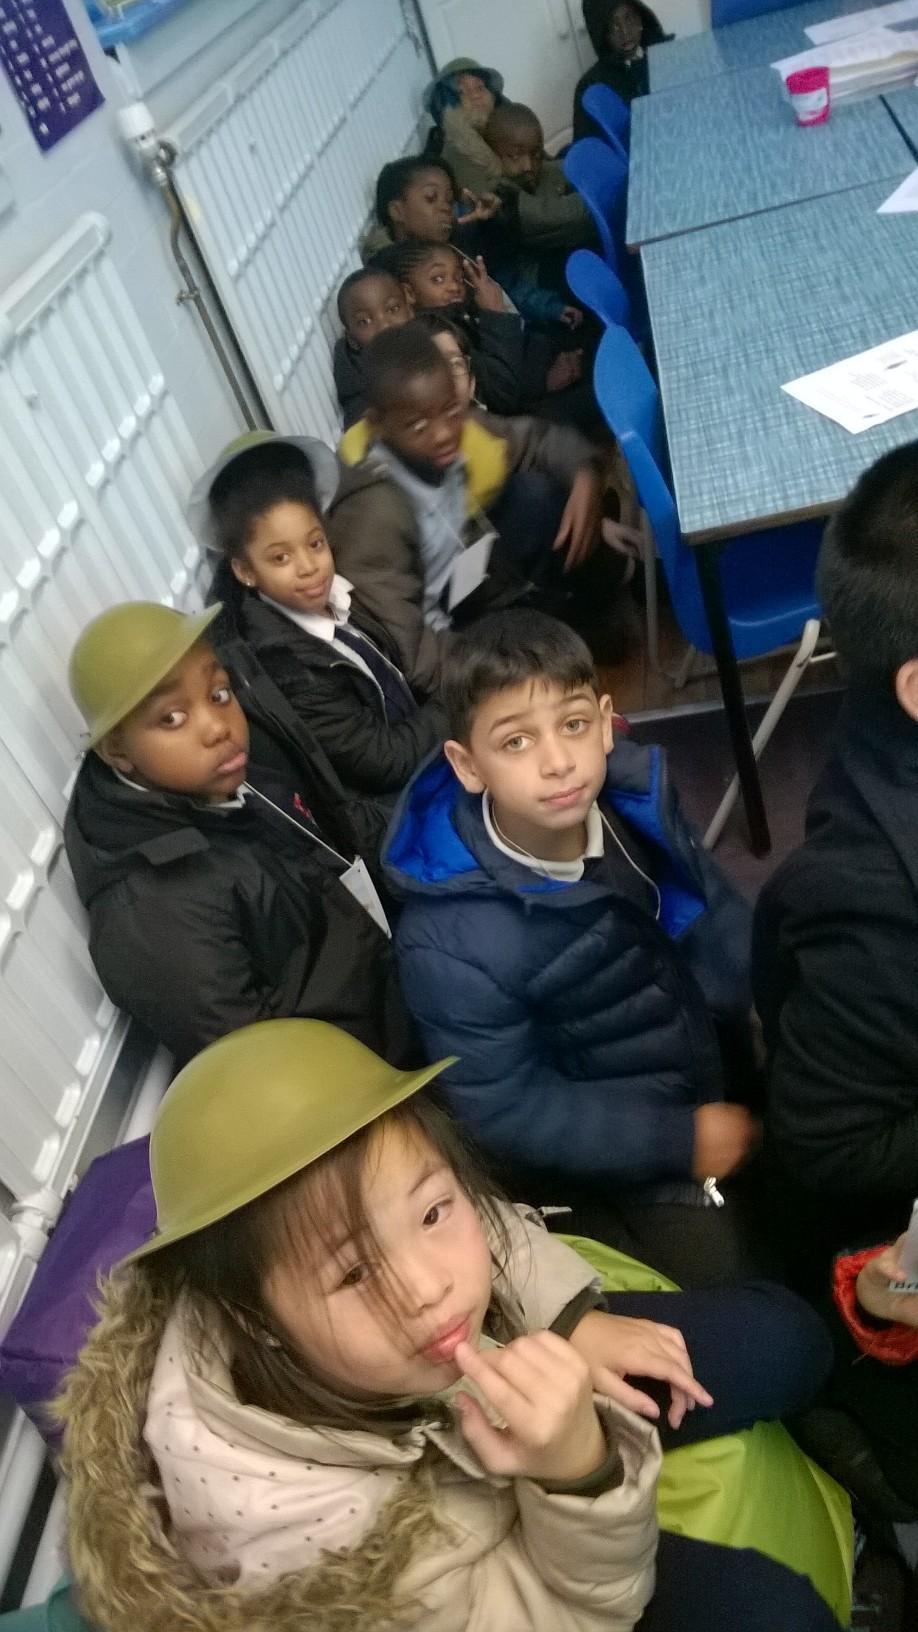 We were reading Michael Foreman's story of young men in the trenches 'War Game'. We re-enacted the Christmas Truce between British and German soldiers in the winter of 1914. Here, our Tommies are shivering together in their trench! We later wrote stories set in the First World War.